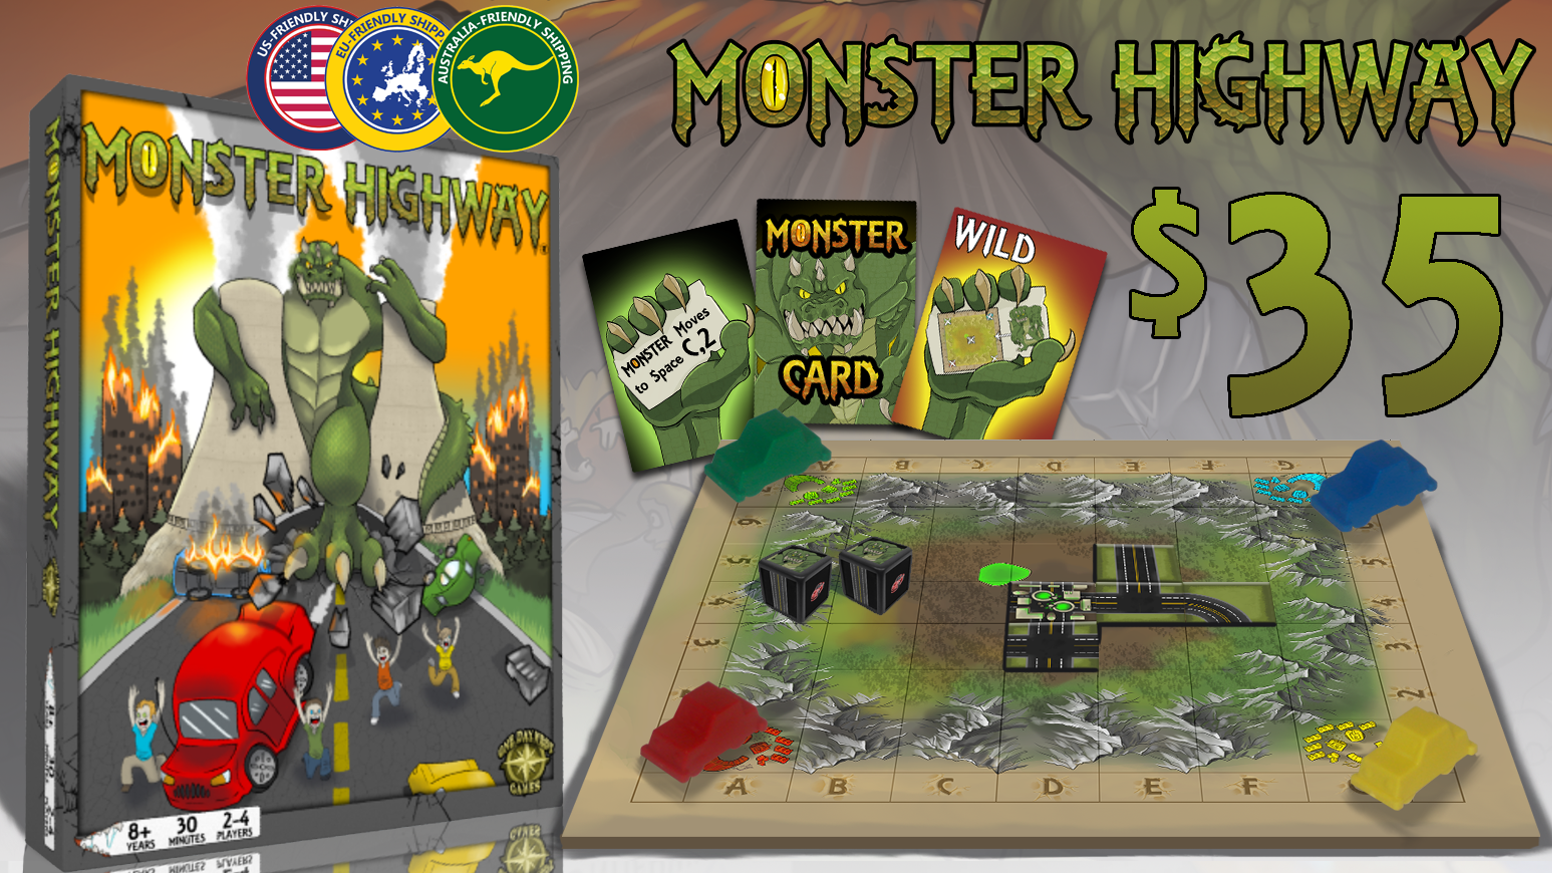 A tile placement game where 2-4 players roll two specialty dice to build roads, move their cars and avoid a radioactive monster.